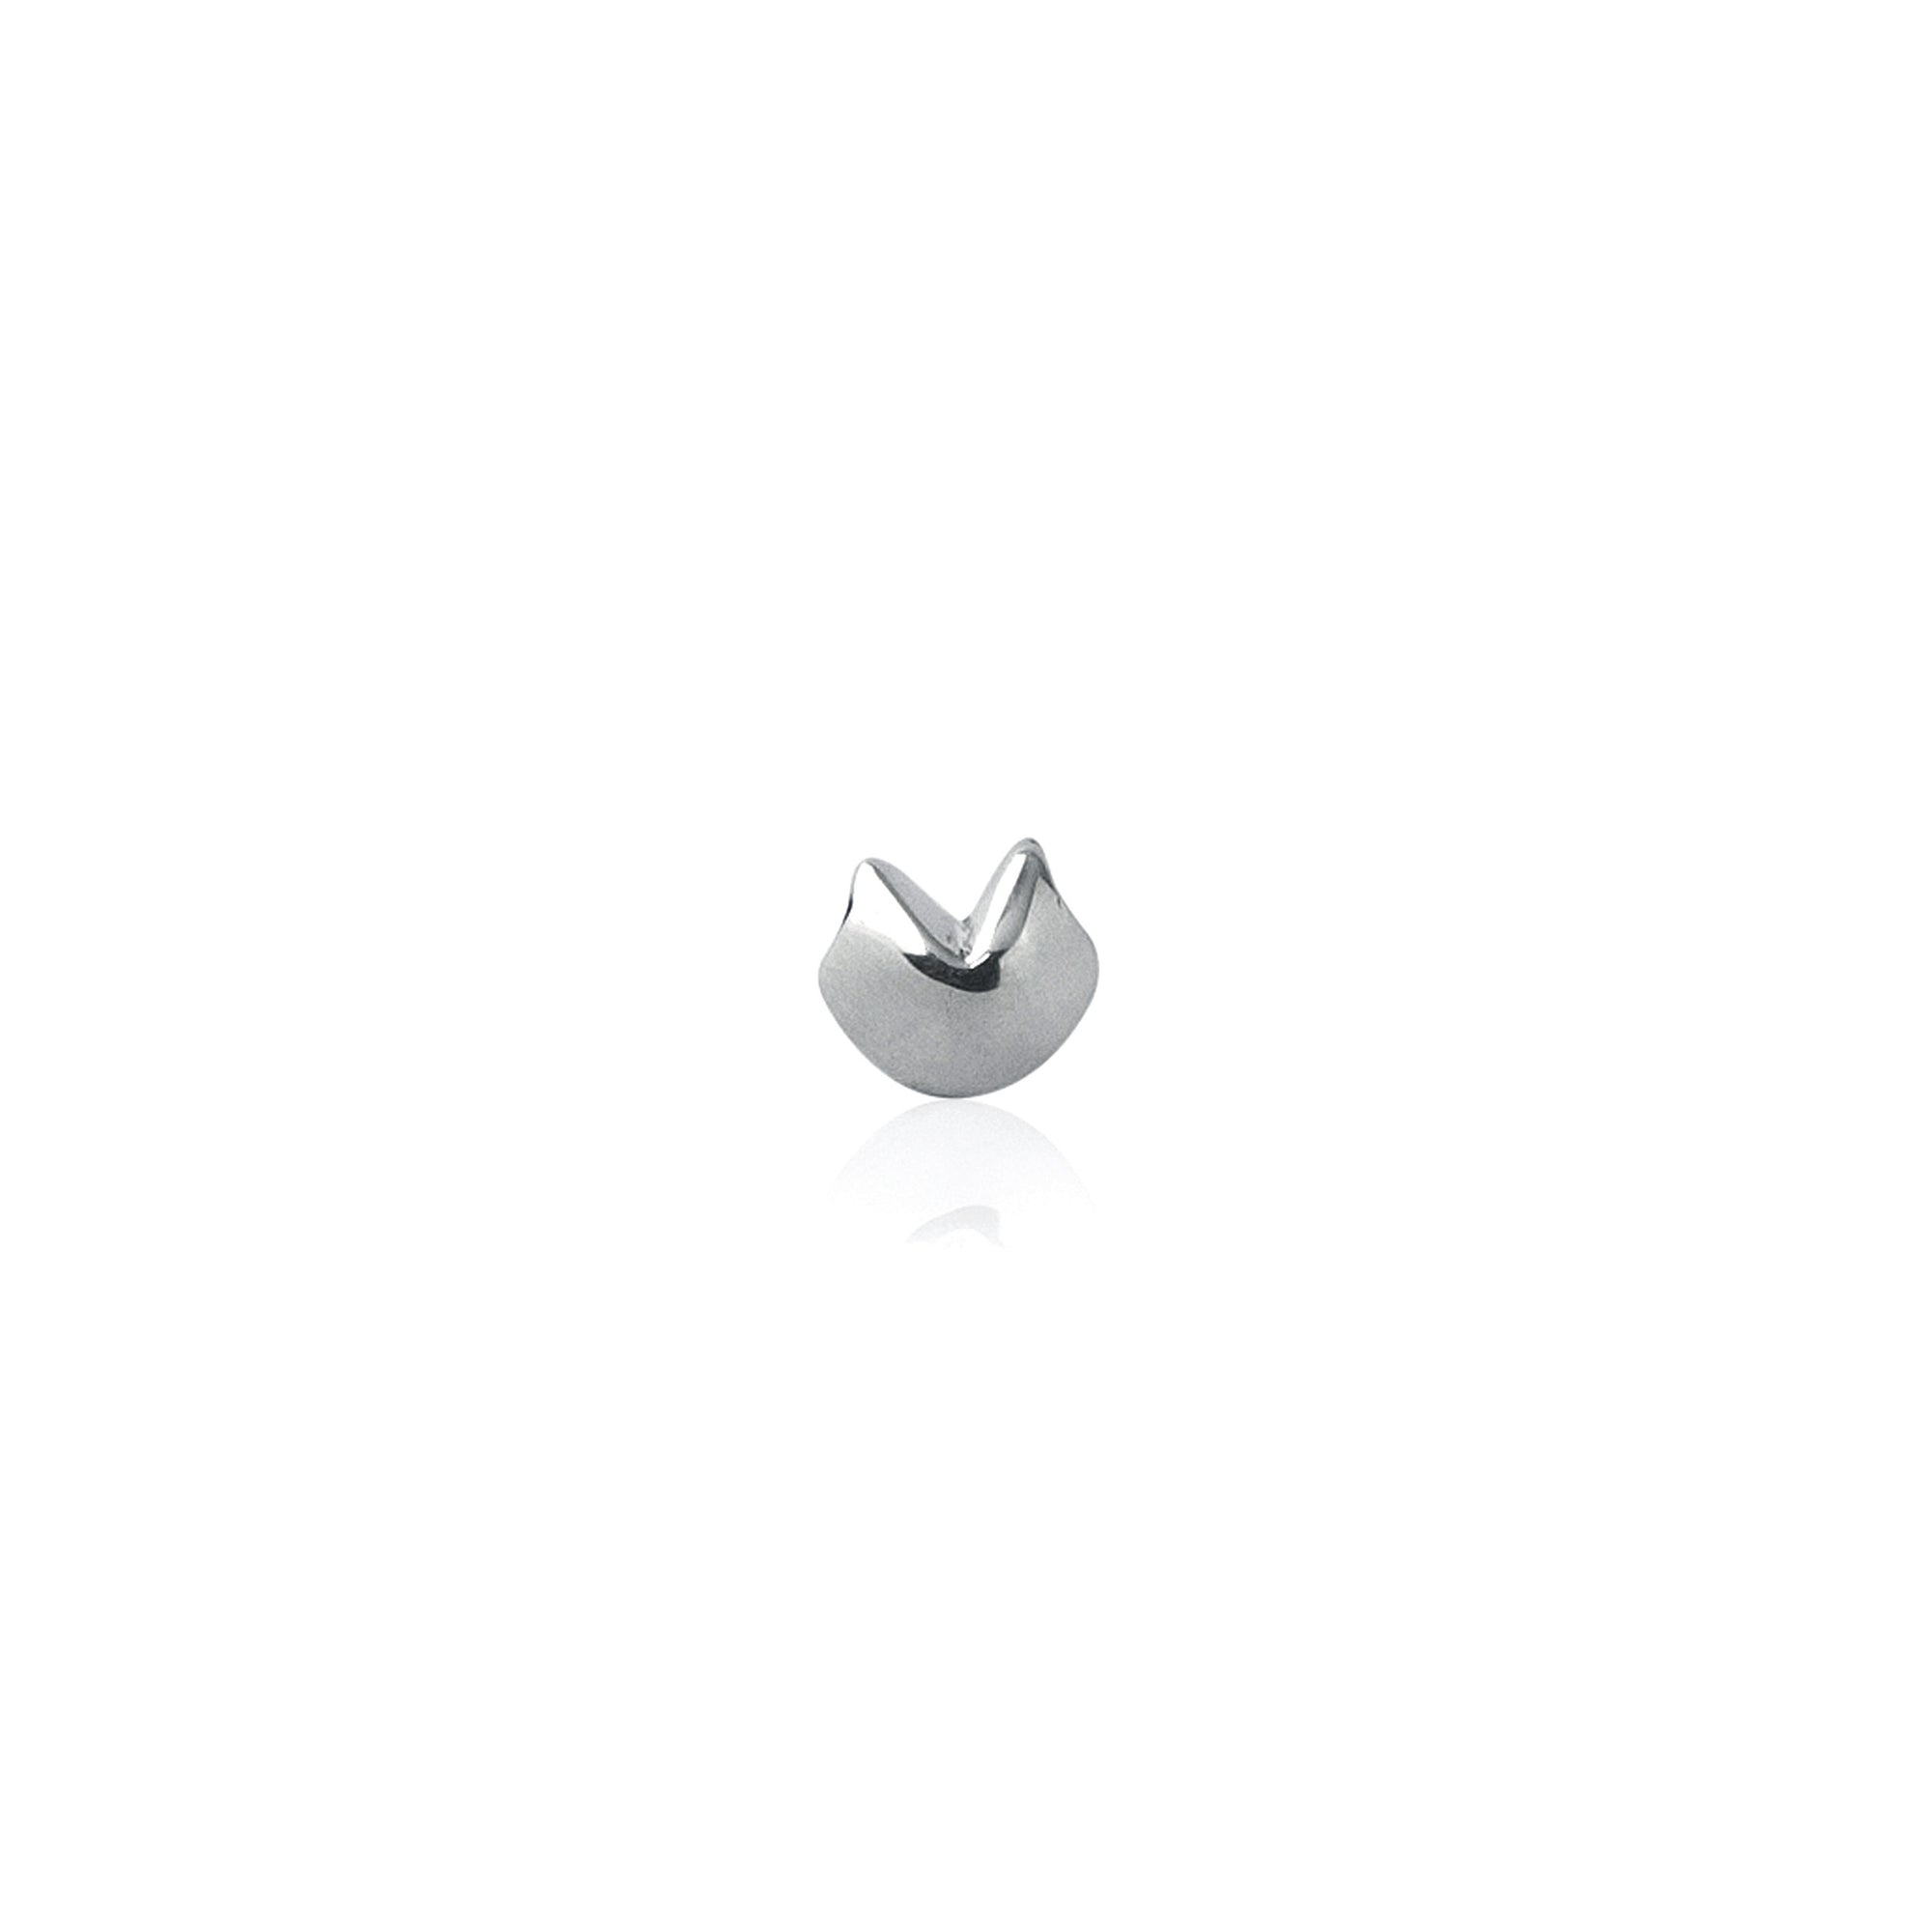 Good Luck Fortune Cookie Charm - Silver